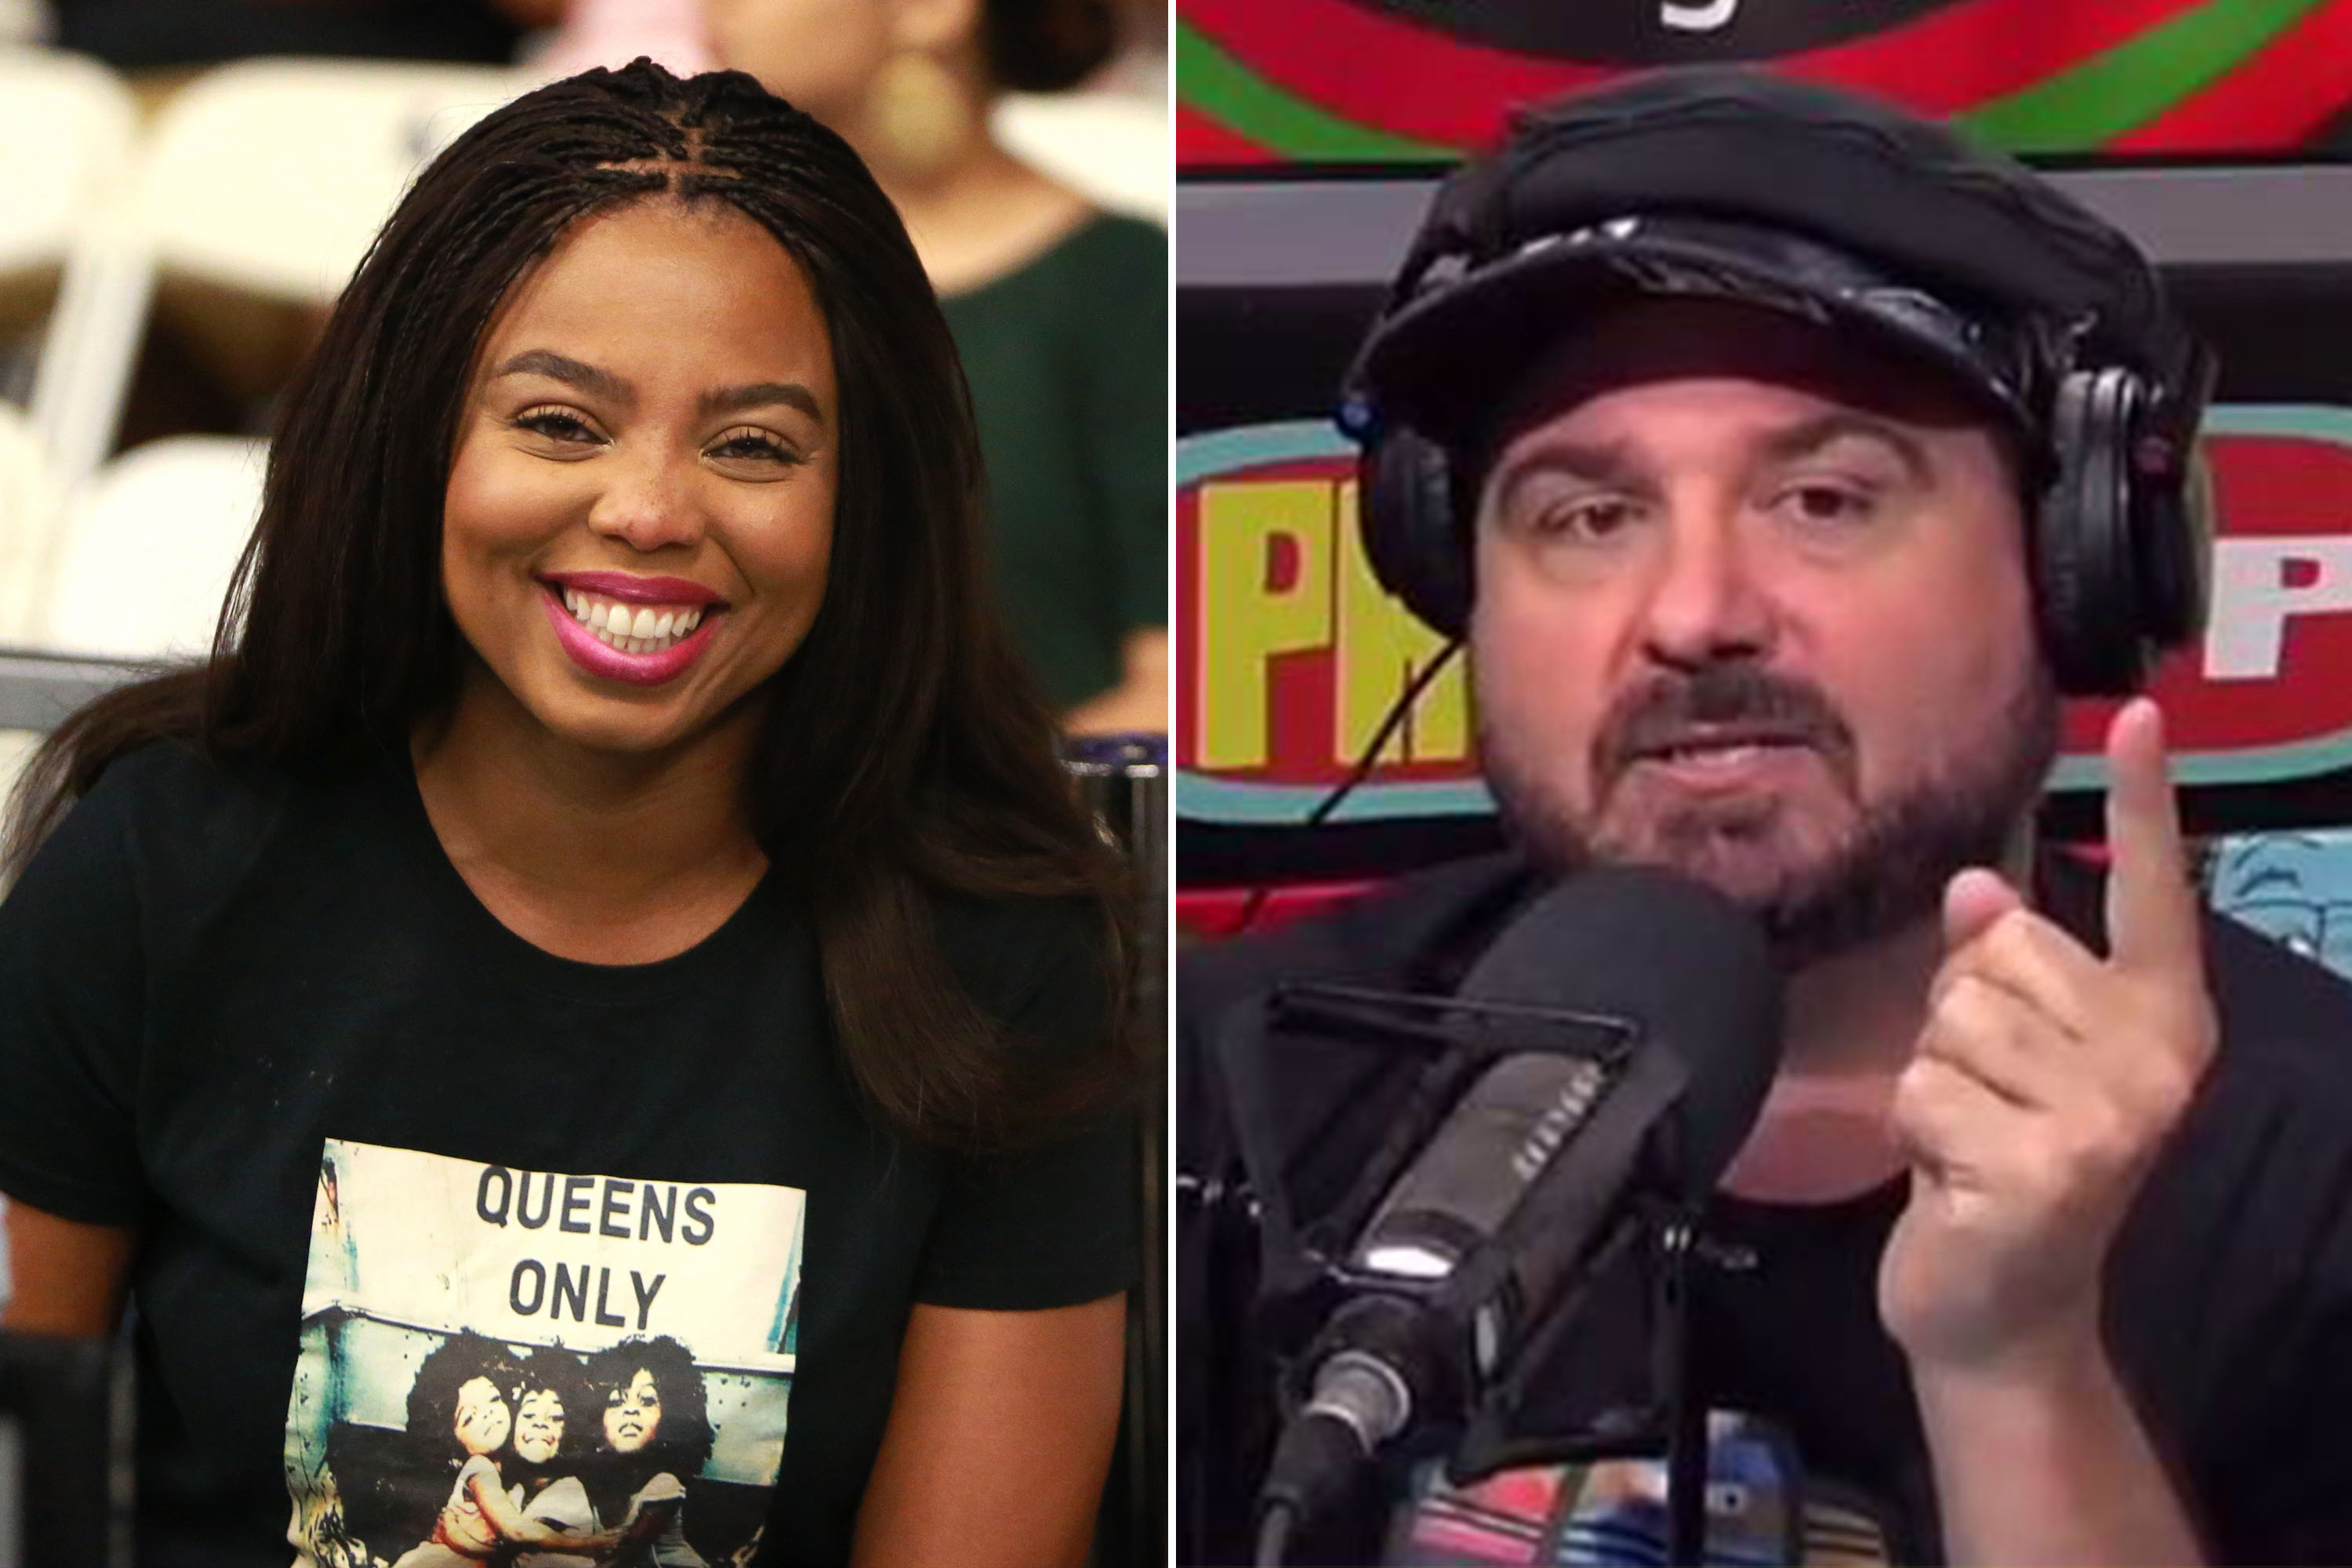 Former ESPN Star Jemele Hill Doesn't Back Down